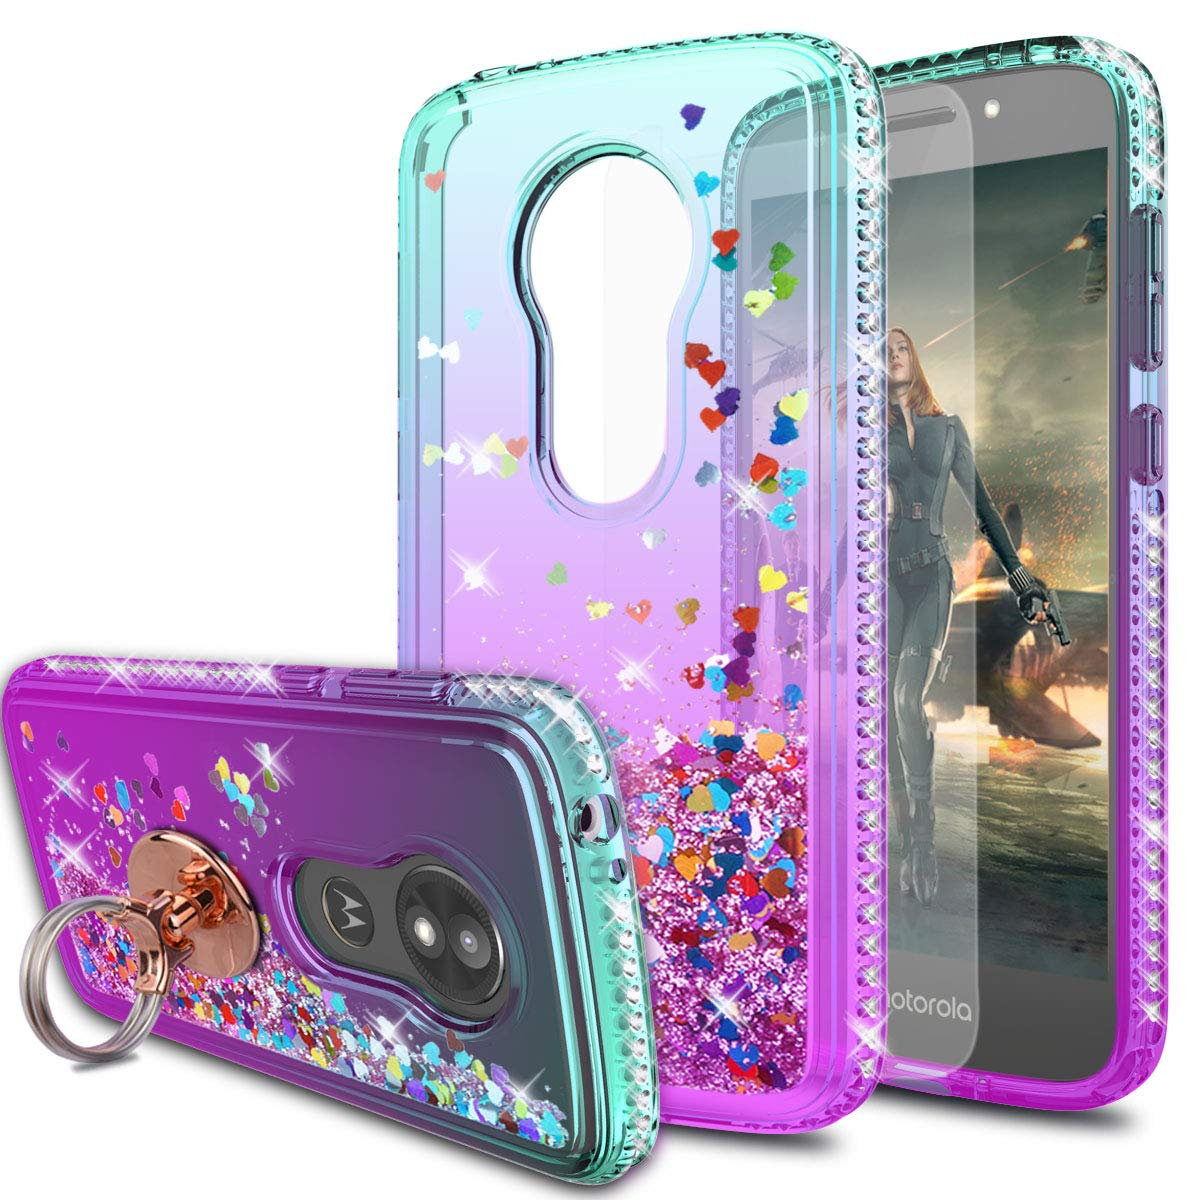 Moto E5 Play Case,Moto E5 Cruise/ XT1921 Cases with HD Screen Protector with Ring Holder,KaiMai Glitter Moving Quicksand Clear Cute Shiny Phone Case for Moto E5 Play-Aqua/Purple Ring by KaiMai